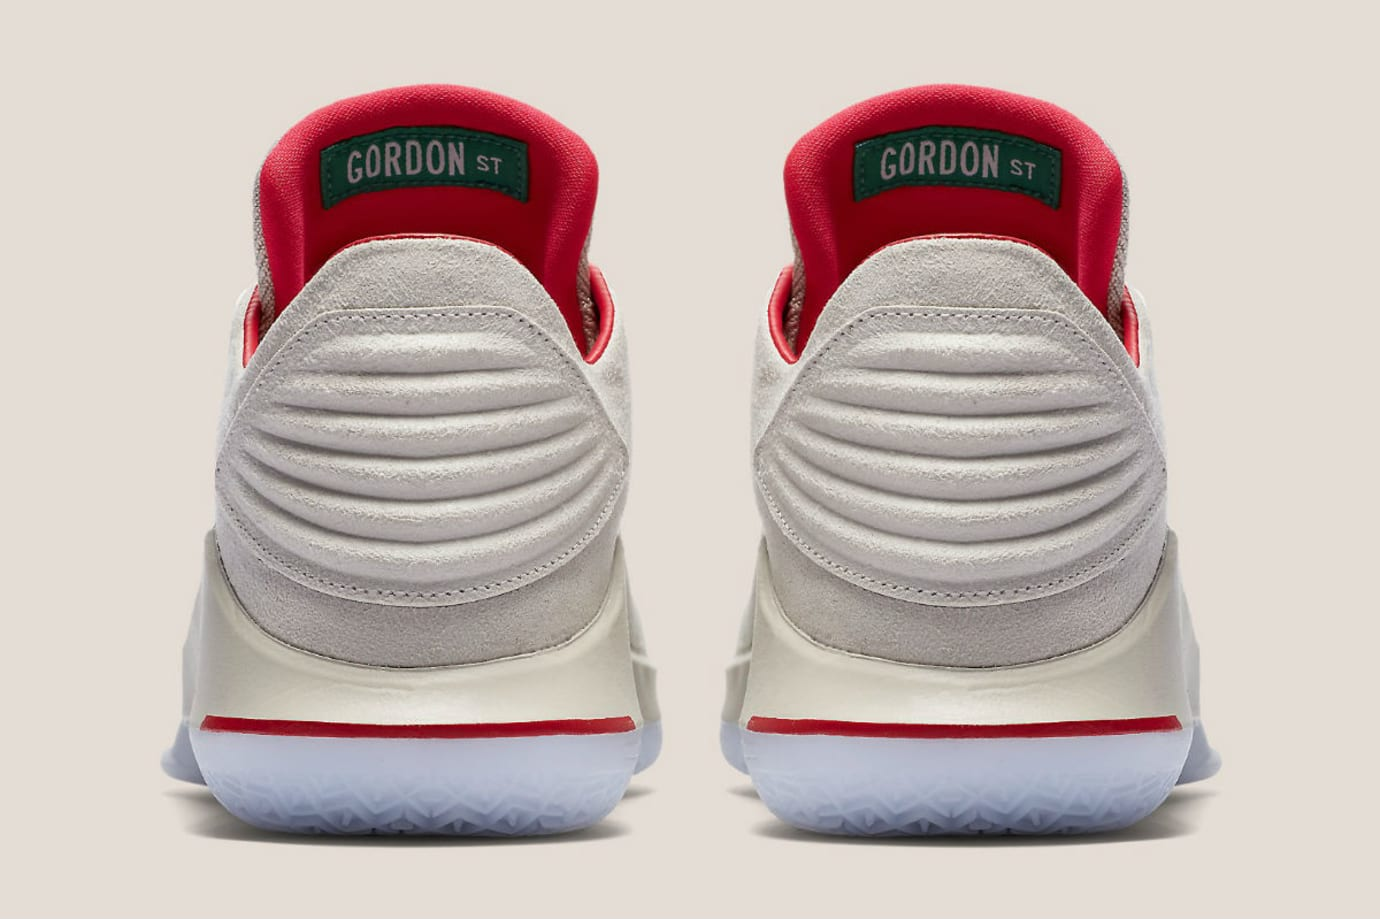 watch 52e57 3dbde Air Jordan 32 Low Gordon Street Release Date AA1256-004 Heel